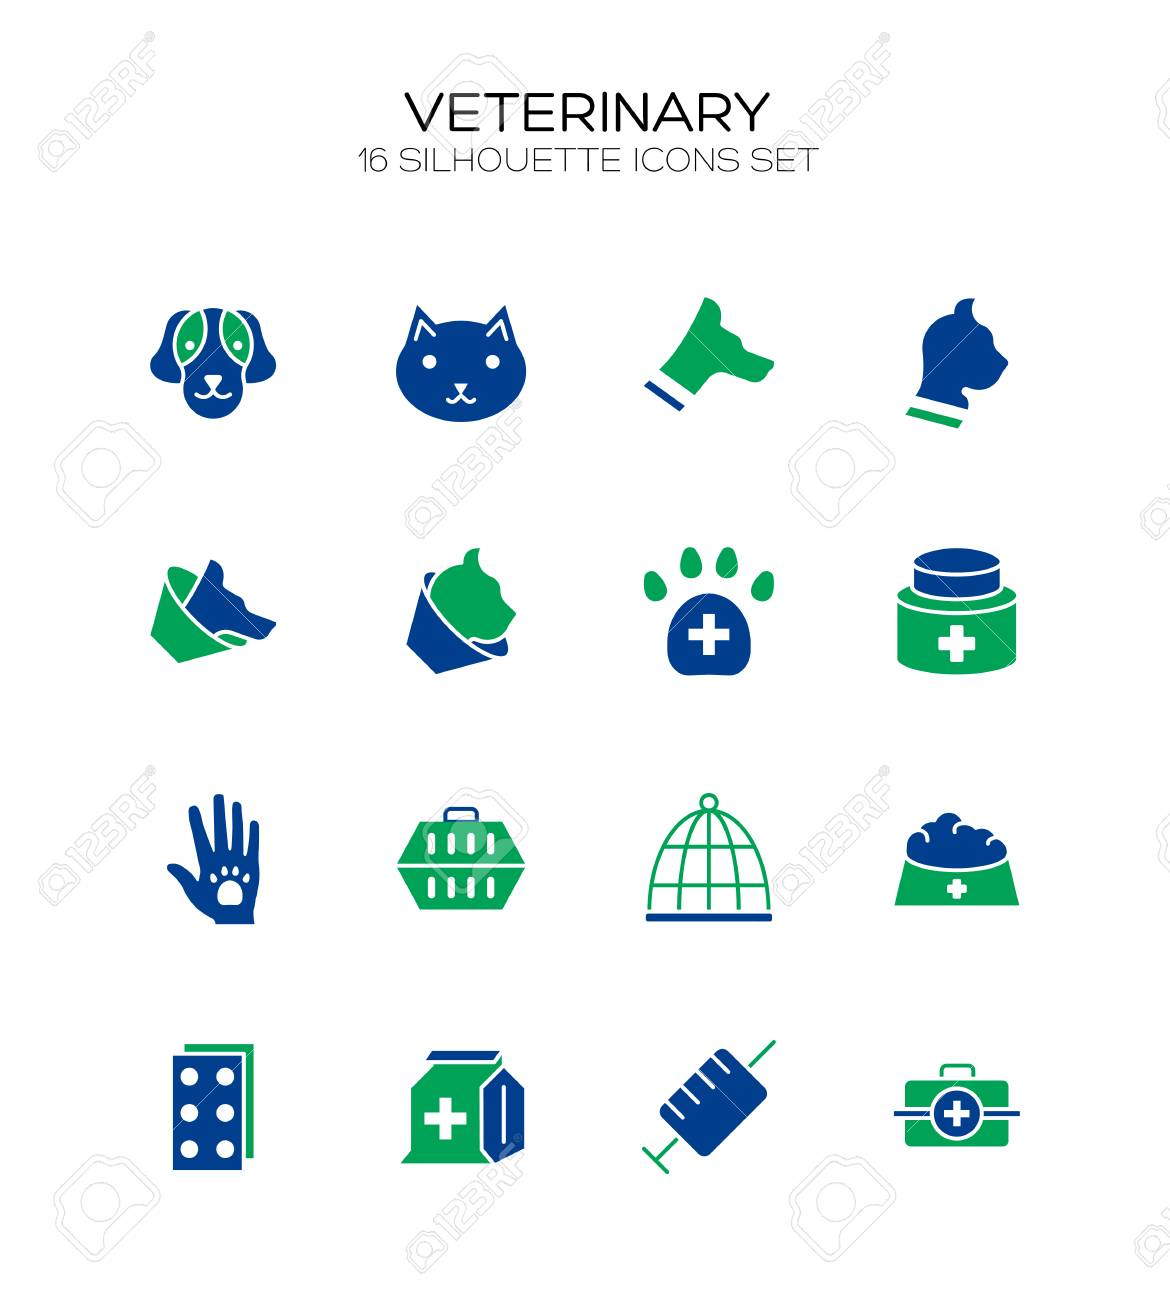 Vet Icon Set Collection Of Veterinary Line Icons High Quality 1170x1300